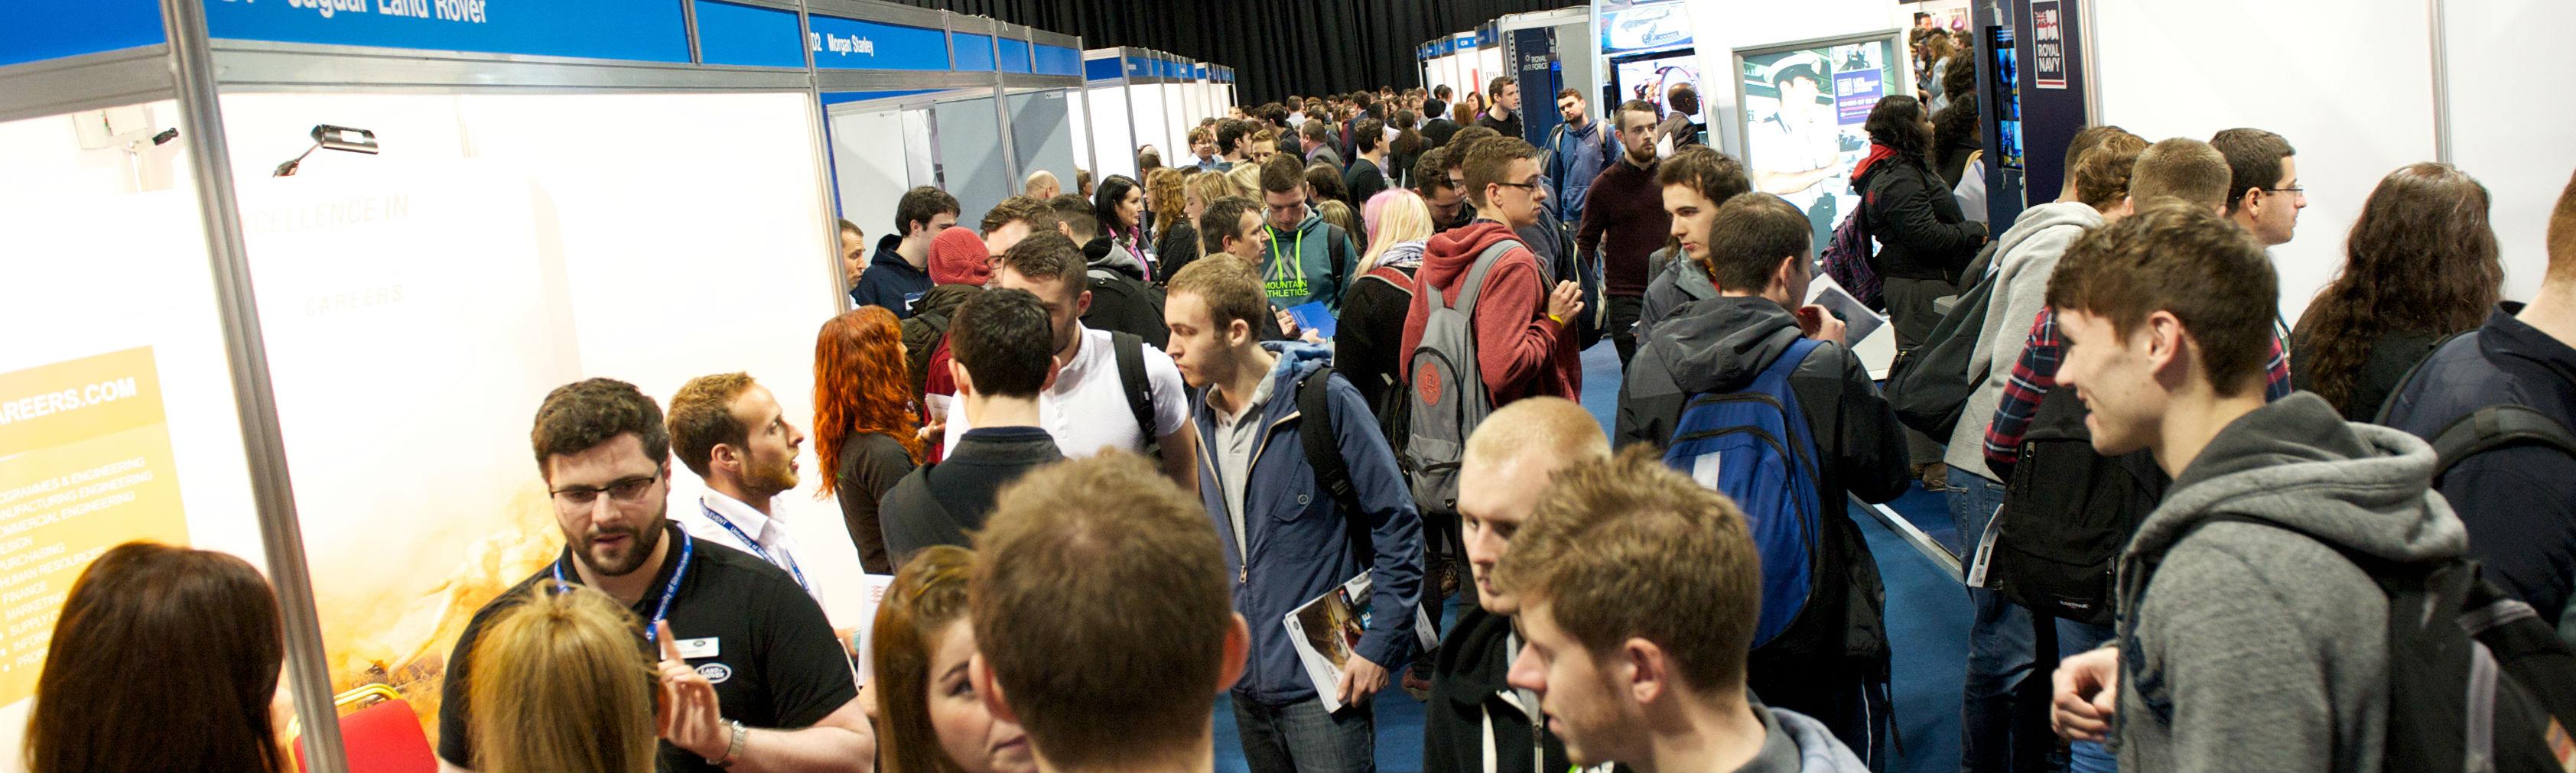 Sign up now for Graduate Fair in Glasgow